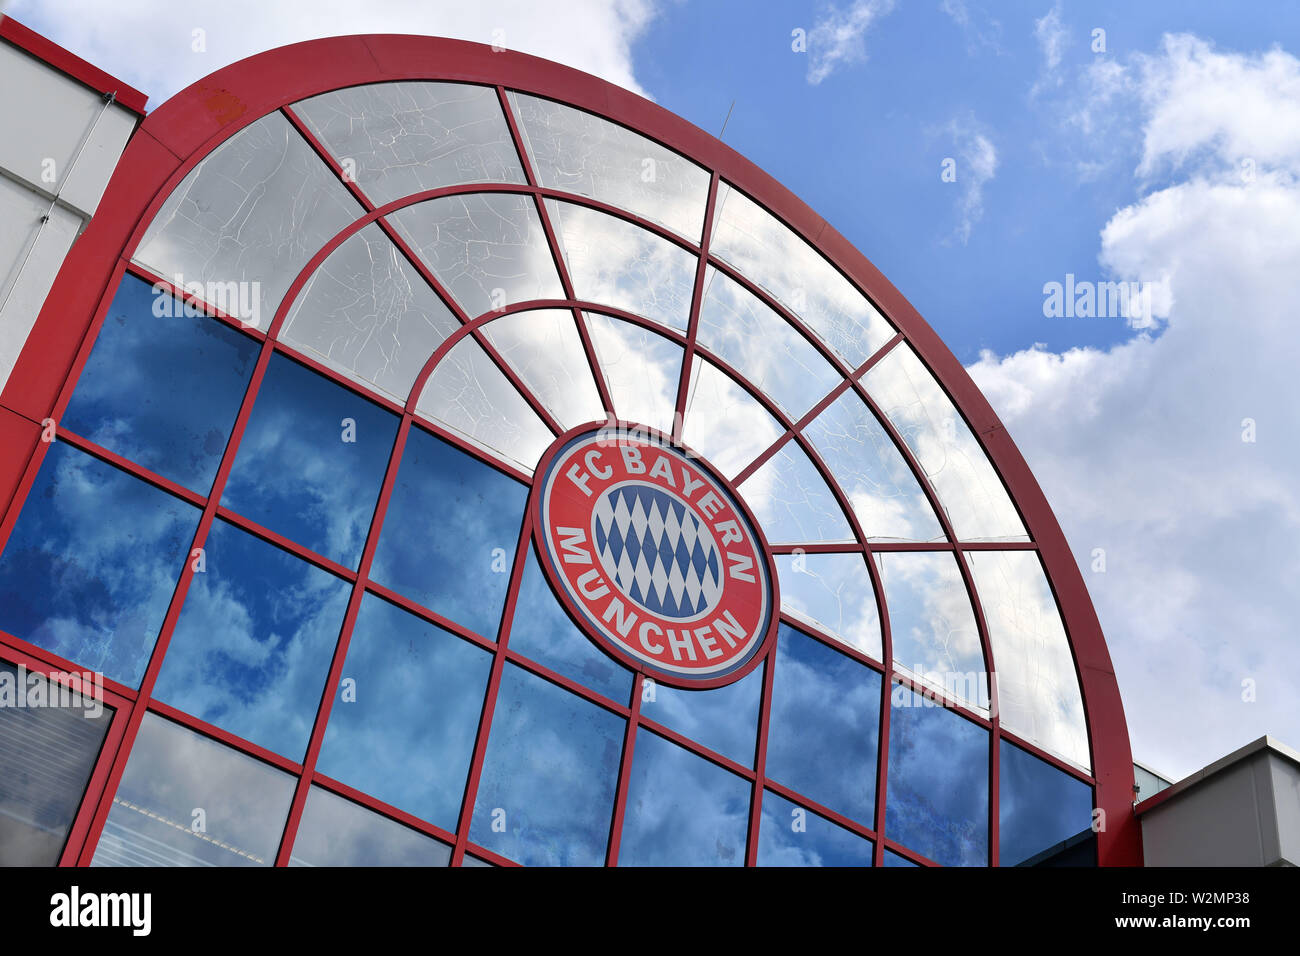 Bayern Munchen Club Wappen Club Logo Business Office